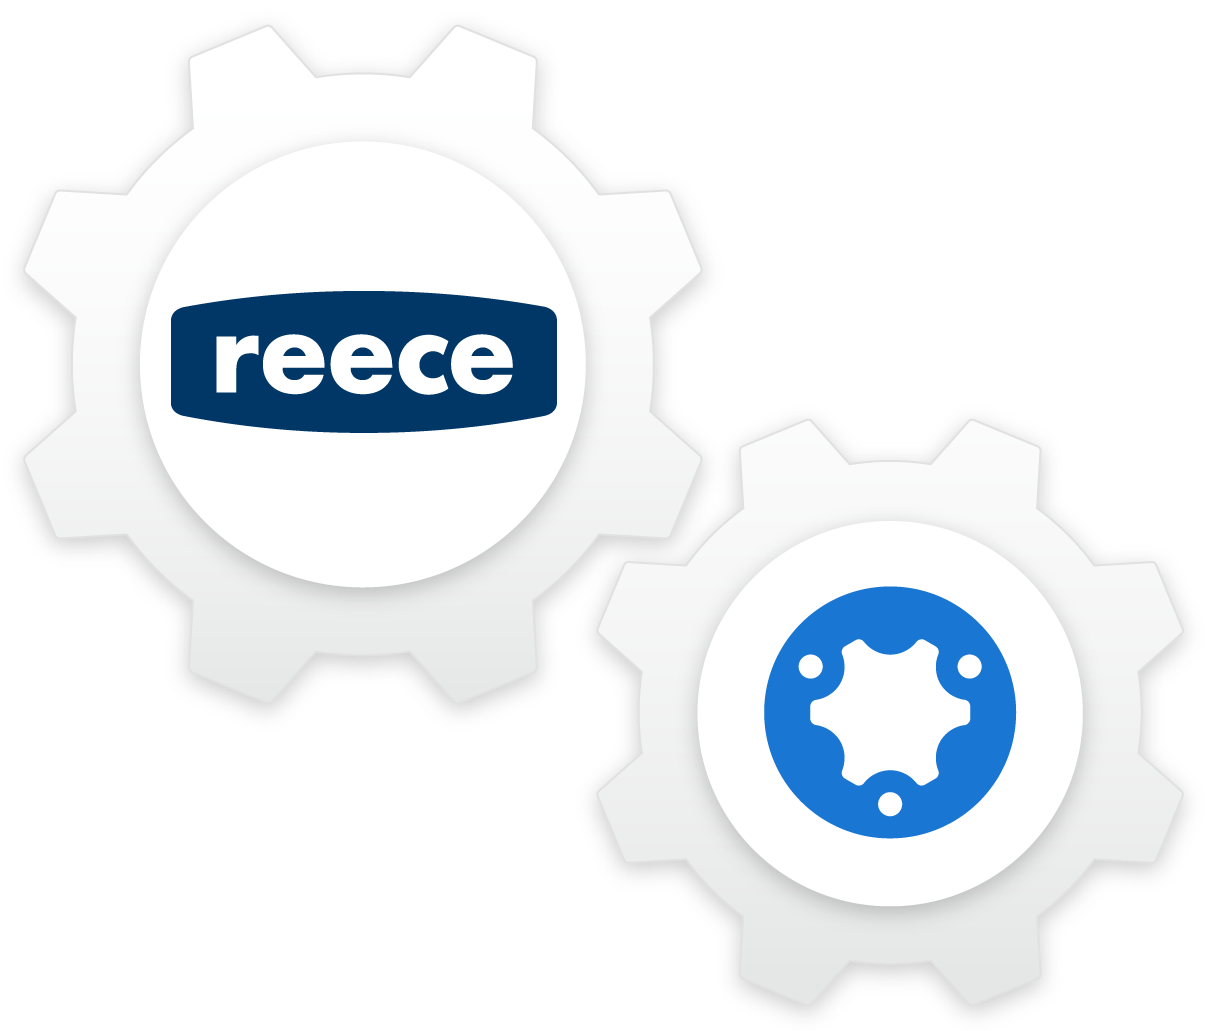 Illustration of simPRO and Reece logos in connected cogs.